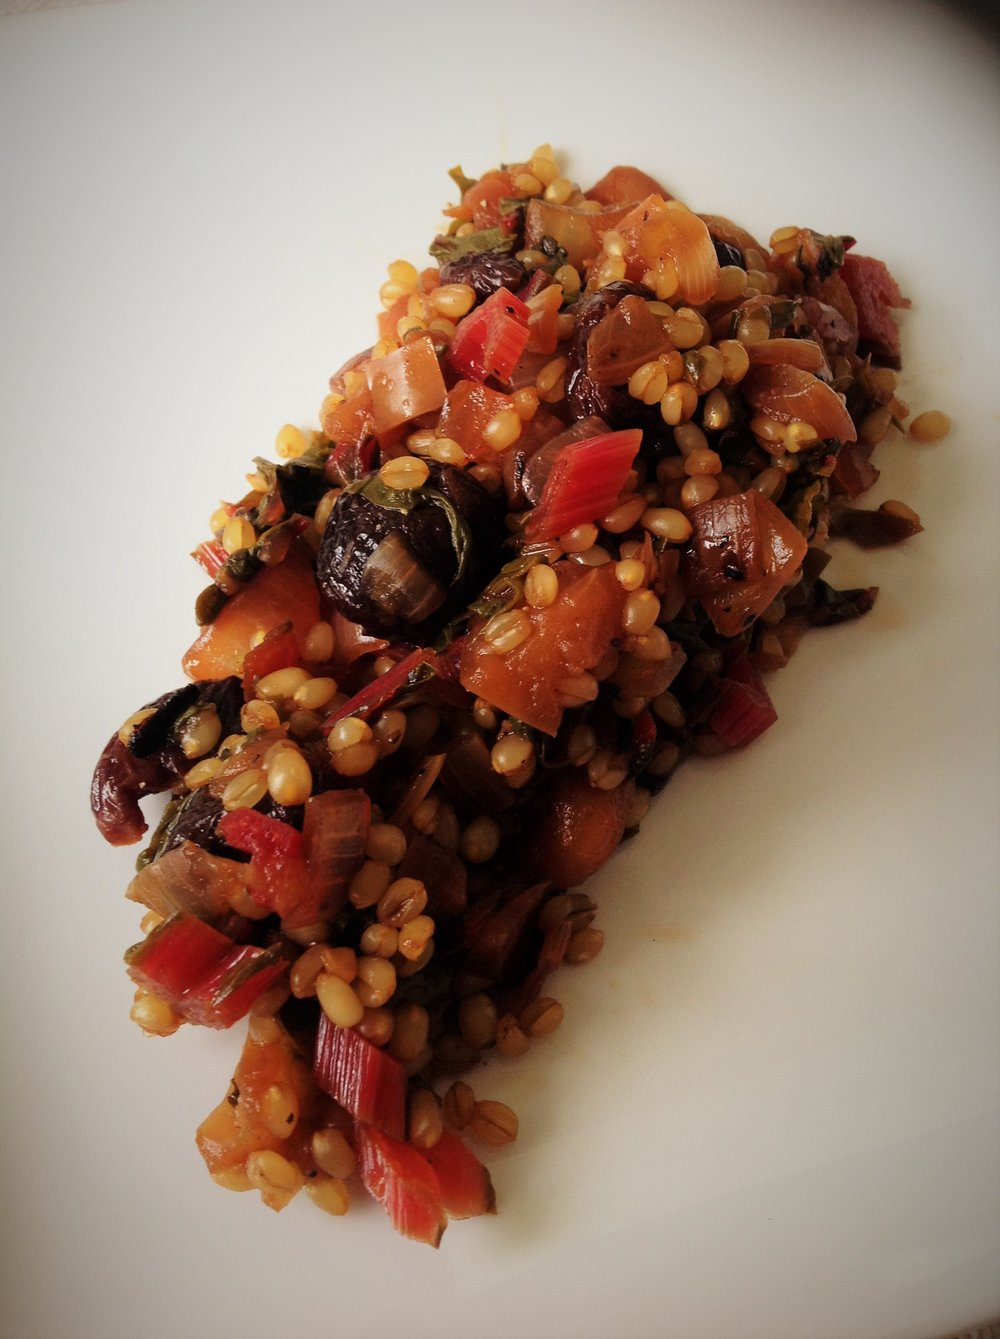 Wheat Berry Cherry and Chard Salad - Healthy, Whole Grain, Oil-Free, Plant-Based Vegan